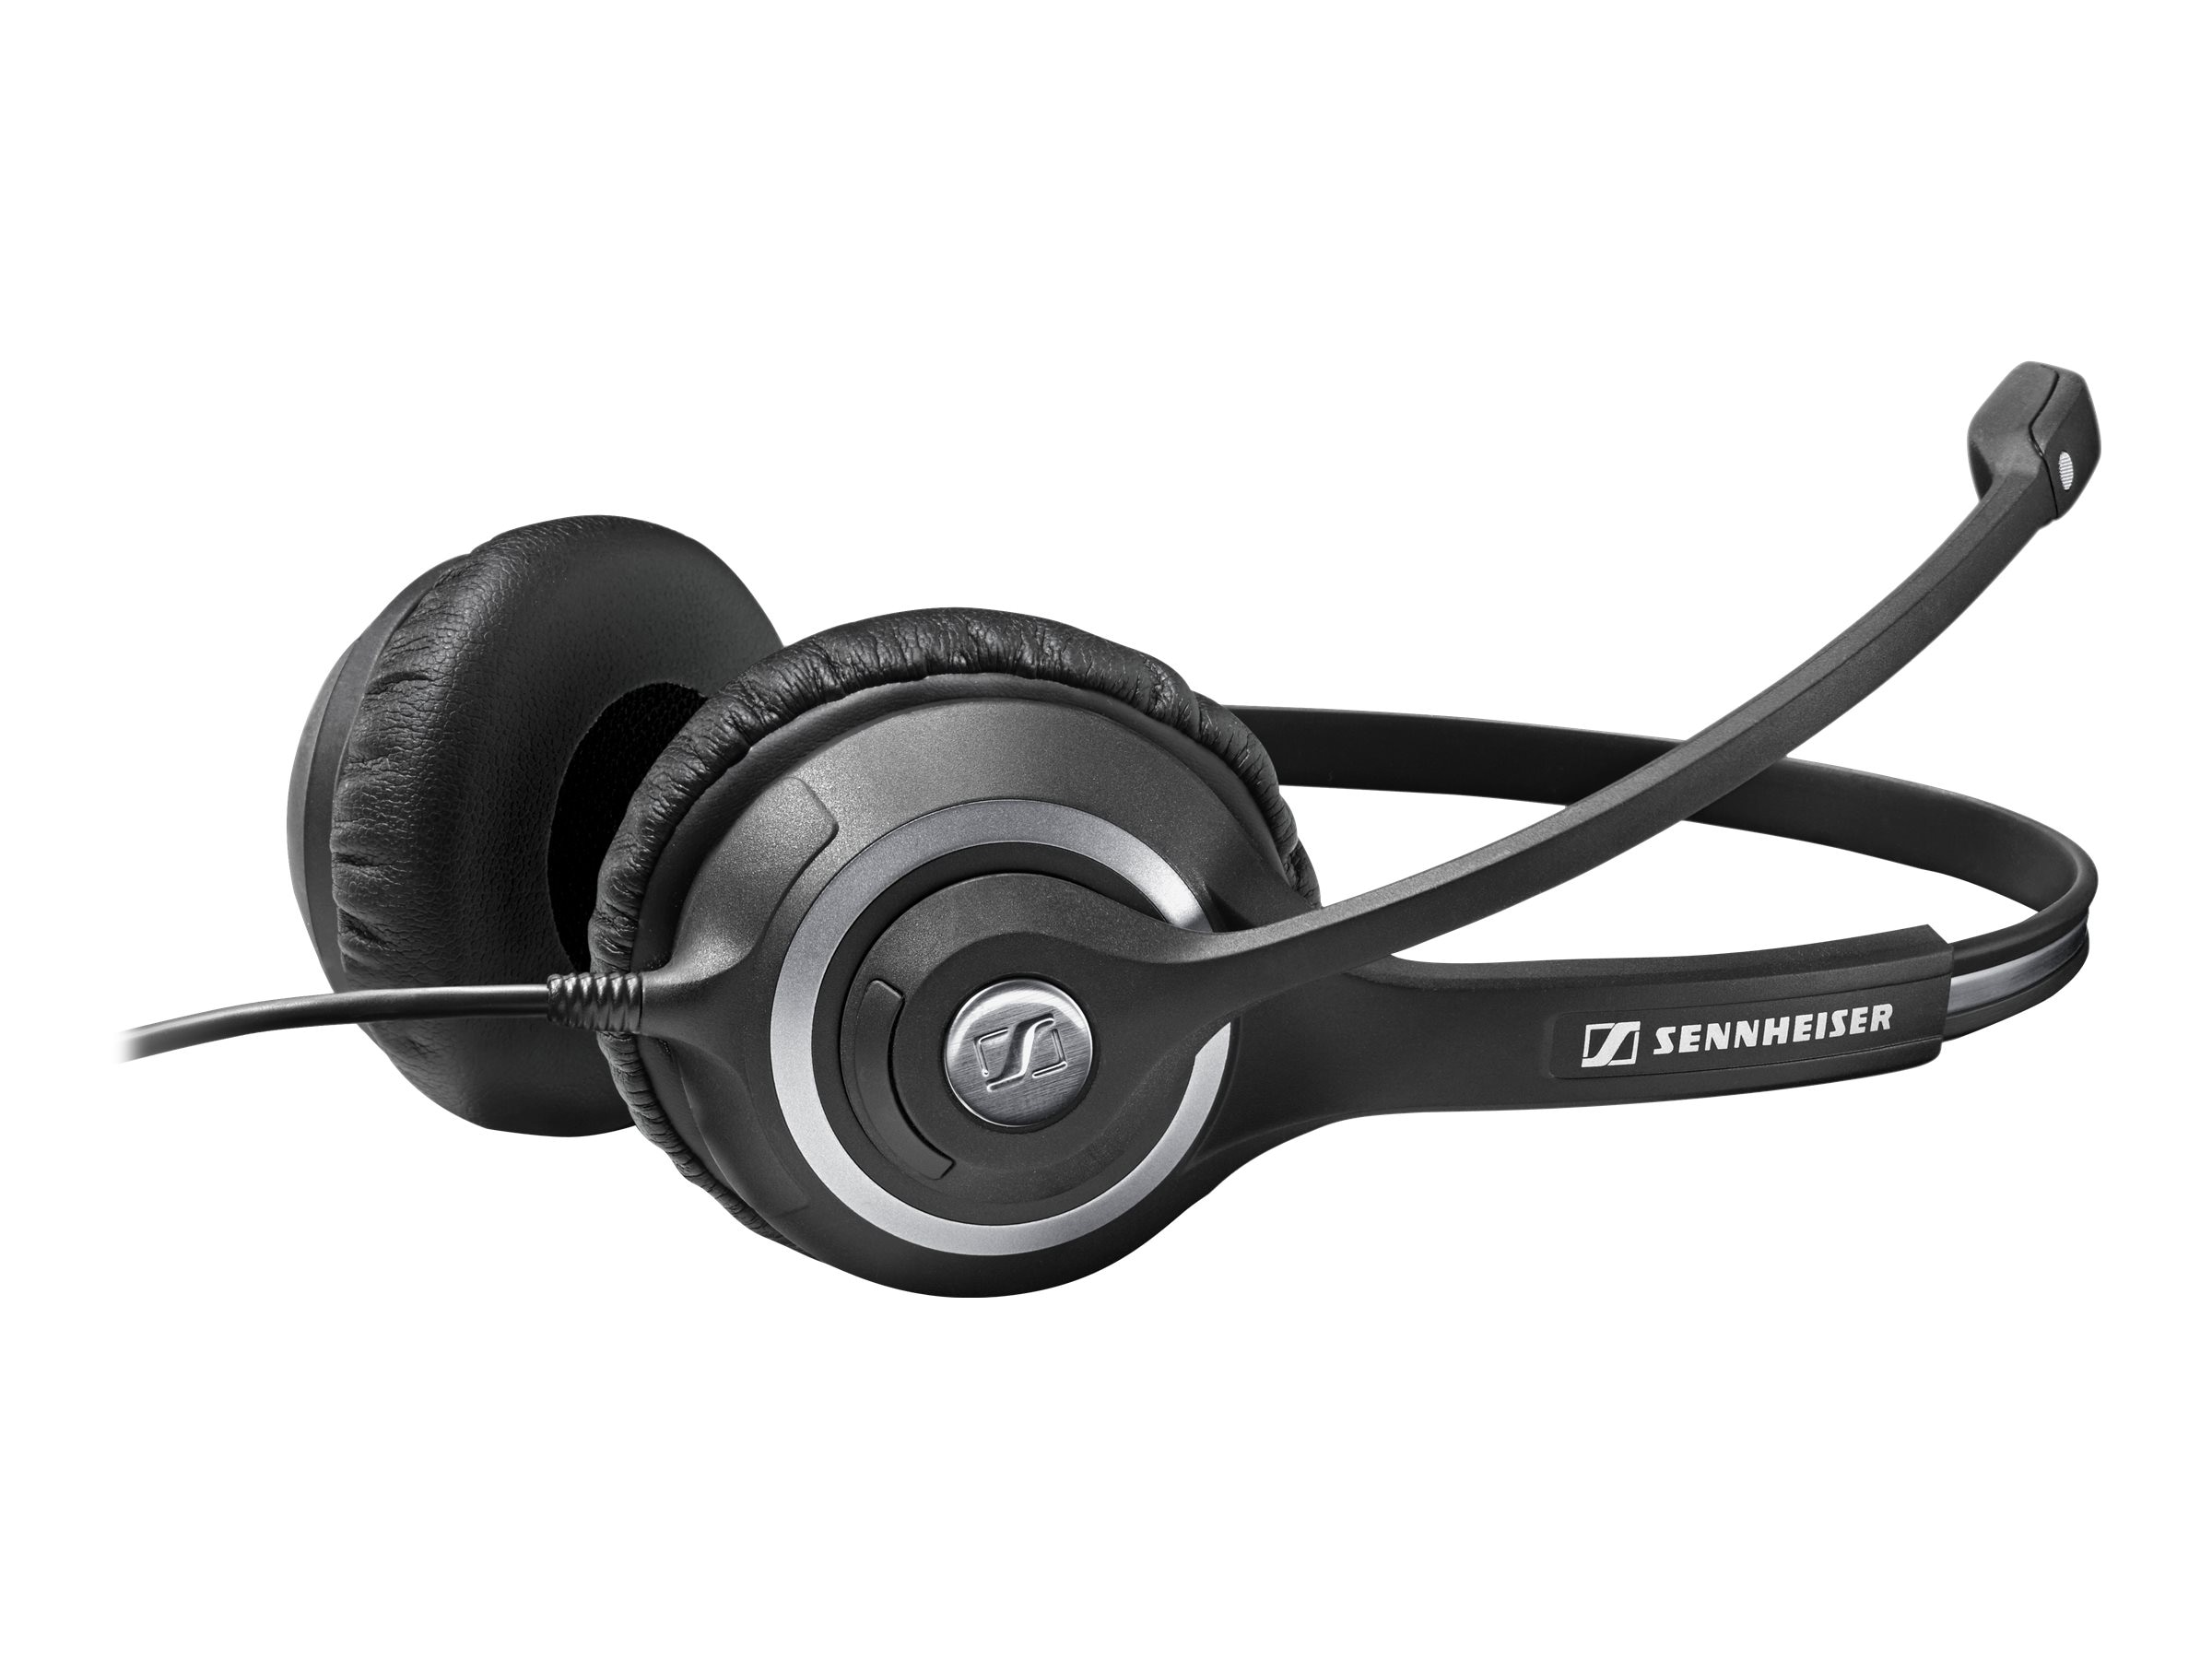 Sennheiser Dual Sided USB Pro Communication Headset